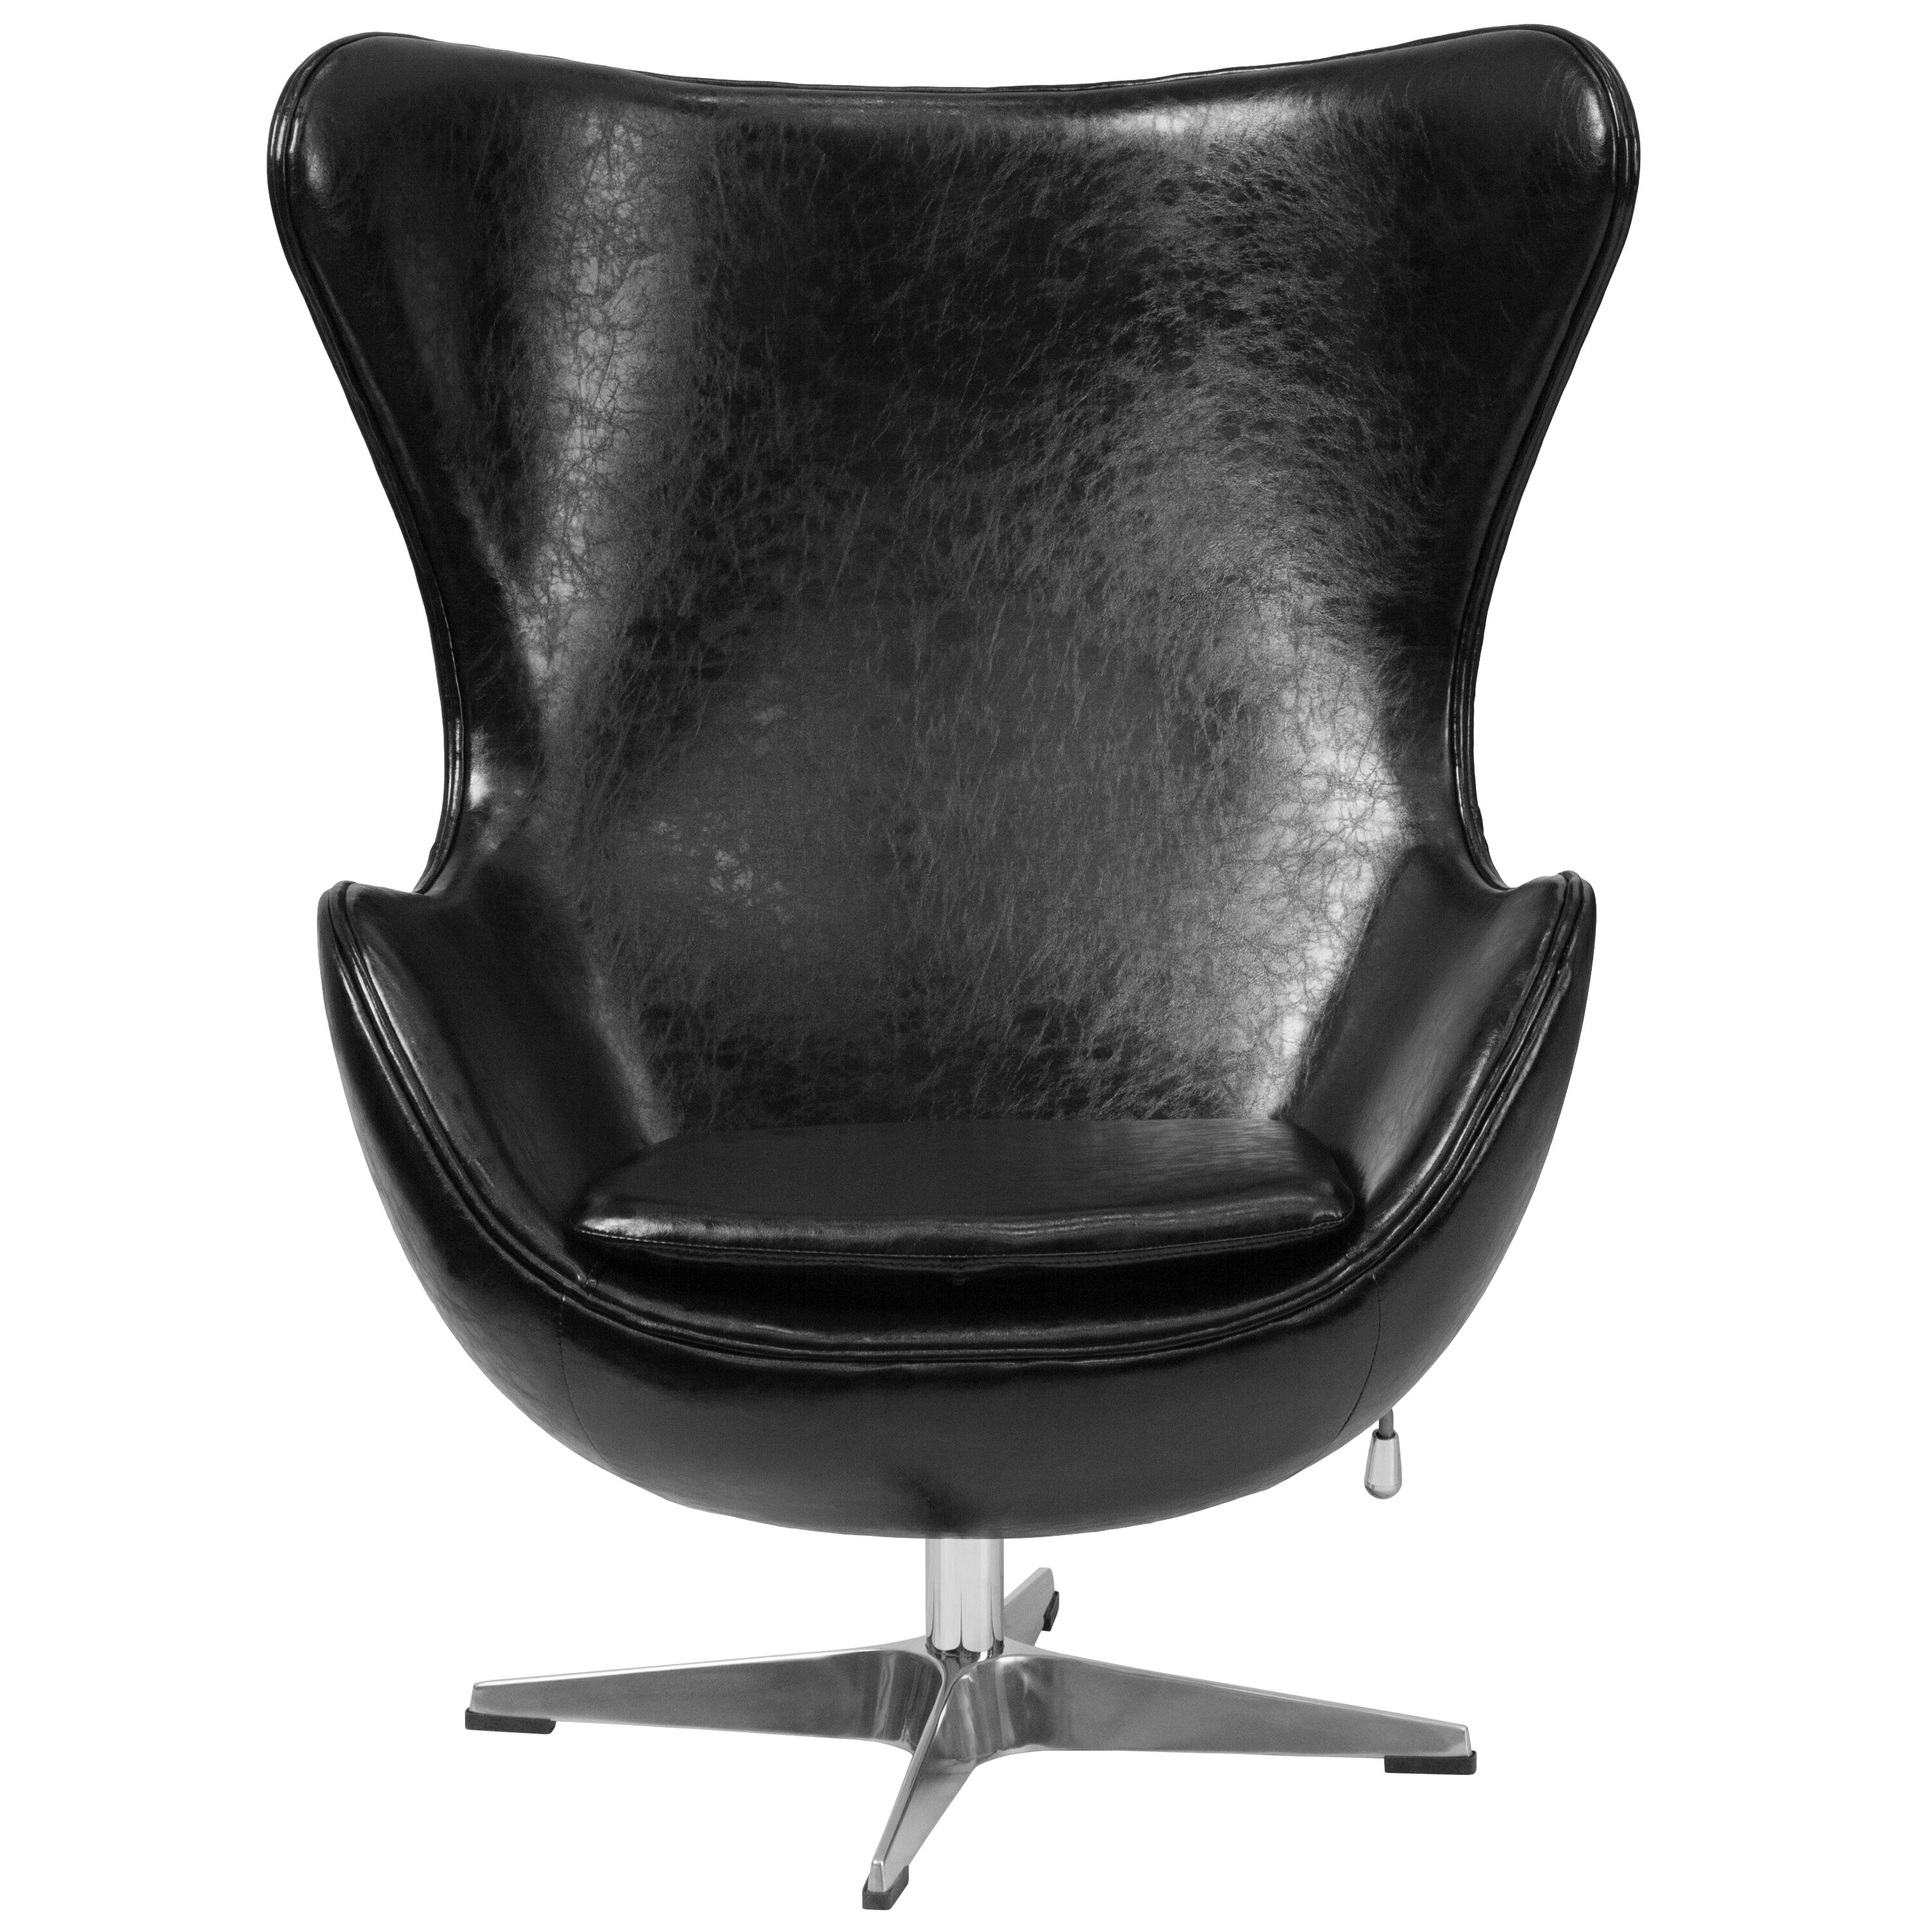 leather egg chair wade logan leather egg chair amp reviews wayfair 16624 | Leather Egg Chair WADL5502